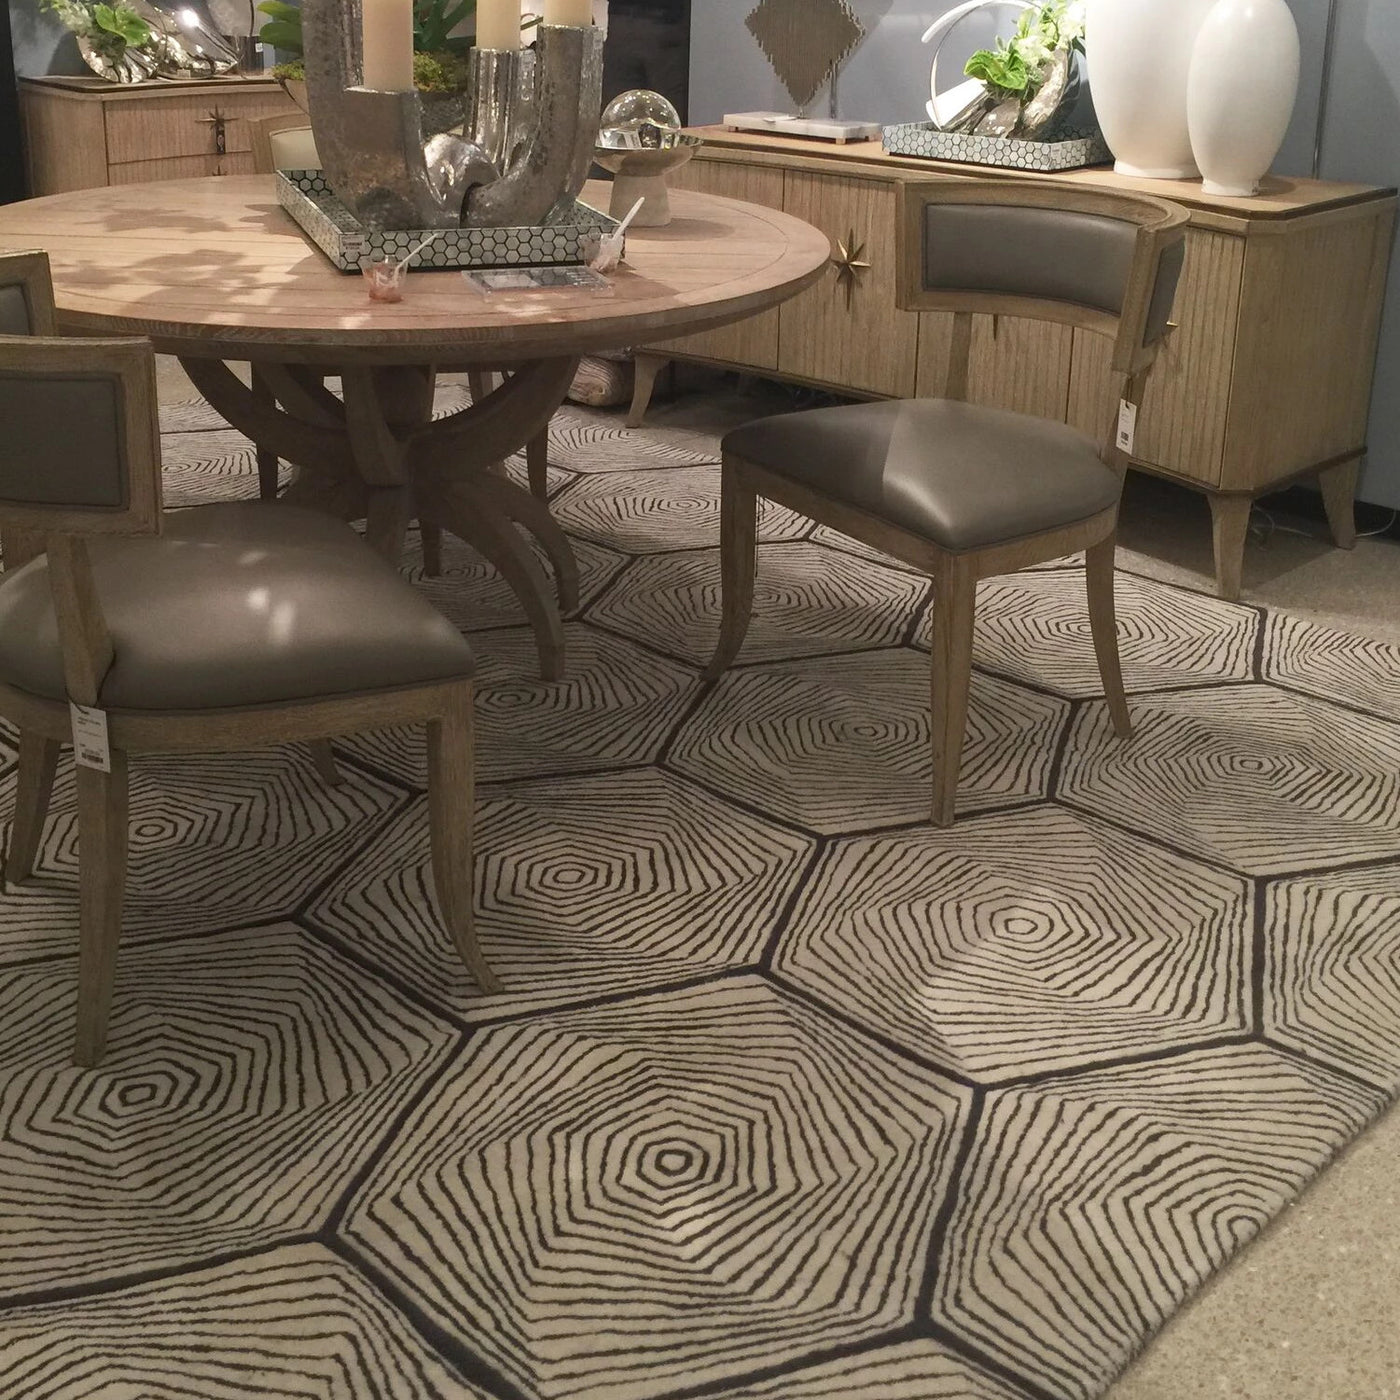 global views hex swirl rug shown in room